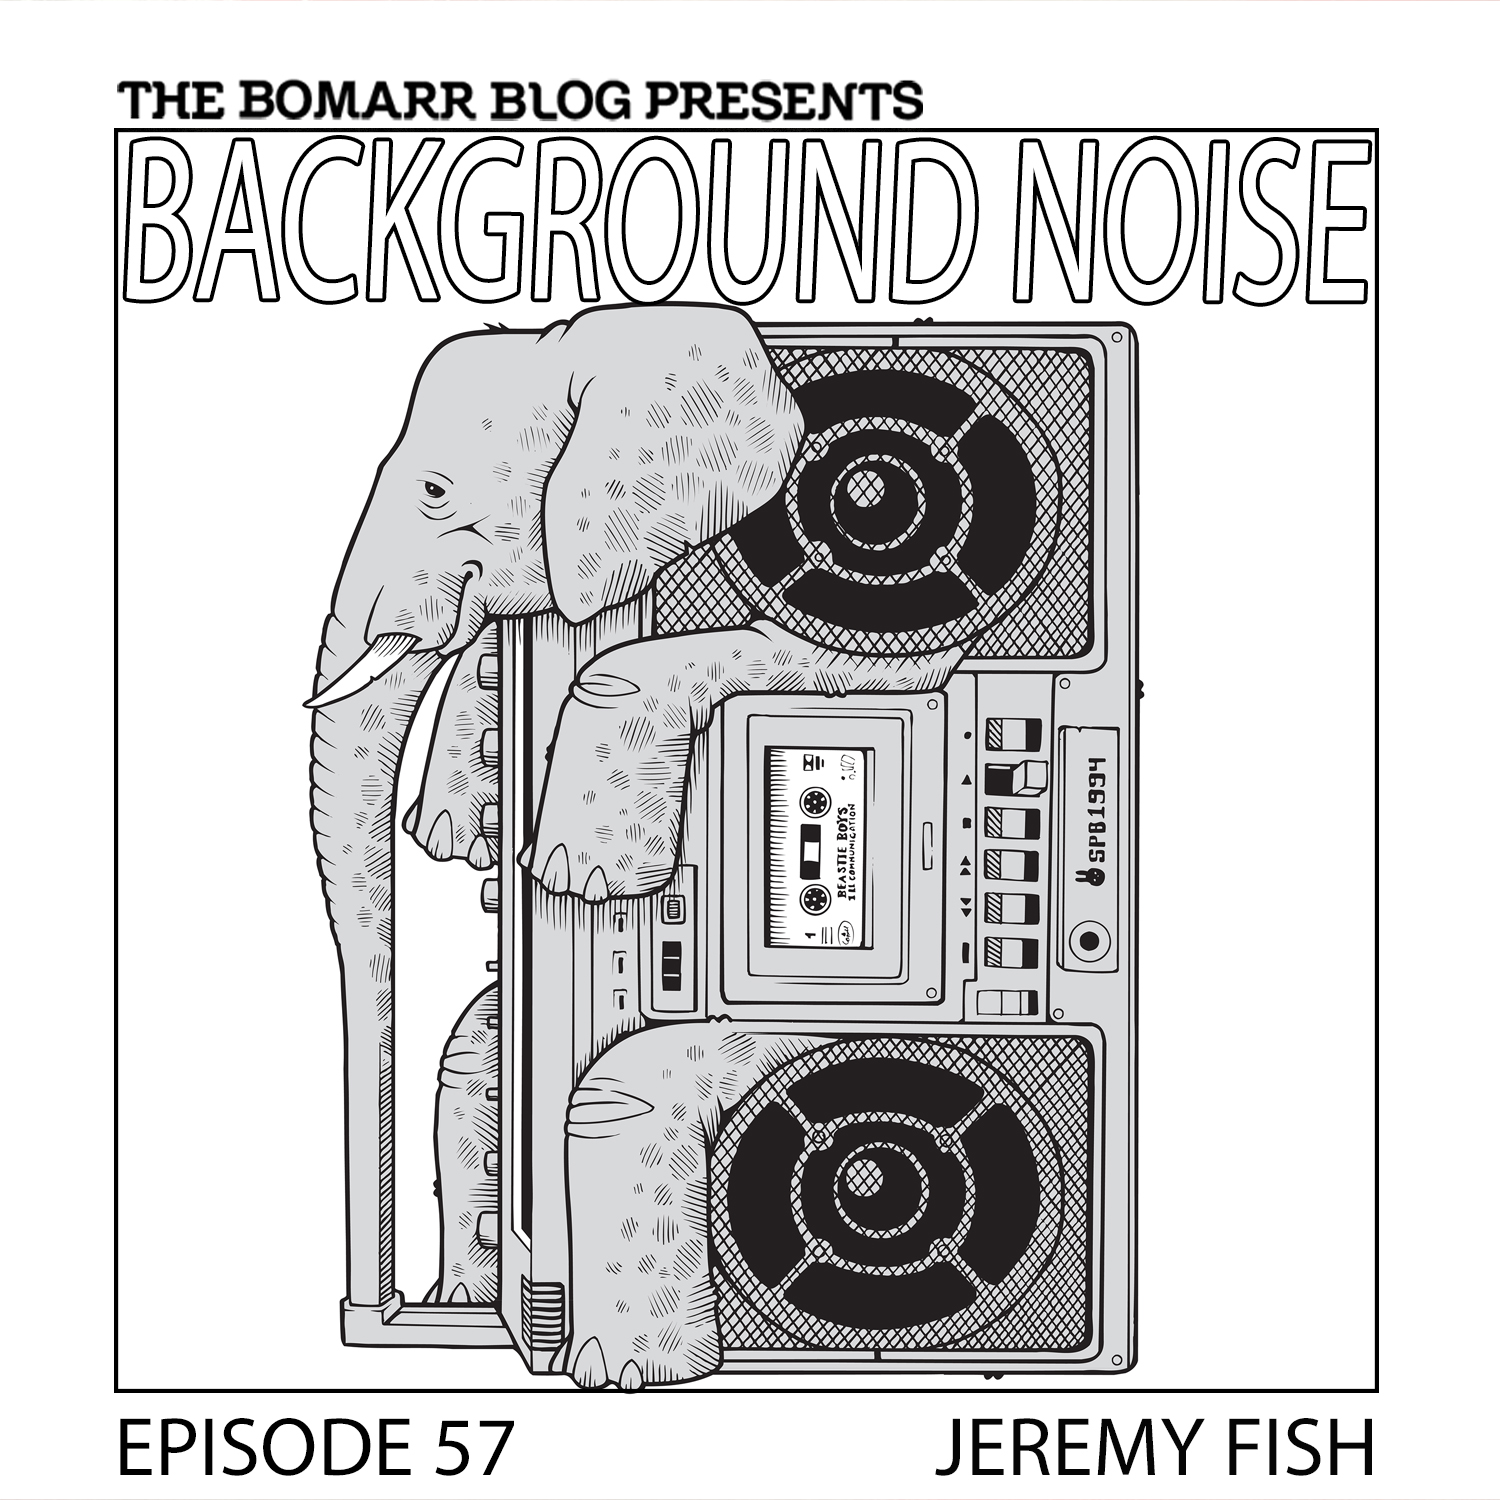 THE BACKGROUND NOISE PODCAST SERIES FOCUSES ON THE MUSIC THAT ARTISTS LISTEN TO WHEN THEY WORK, WHAT MUSIC INSPIRES THEM, OR JUST MUSIC THEY LIKE. THIS WEEK, IN EPISODE 57, the focus is on artist jeremy fish